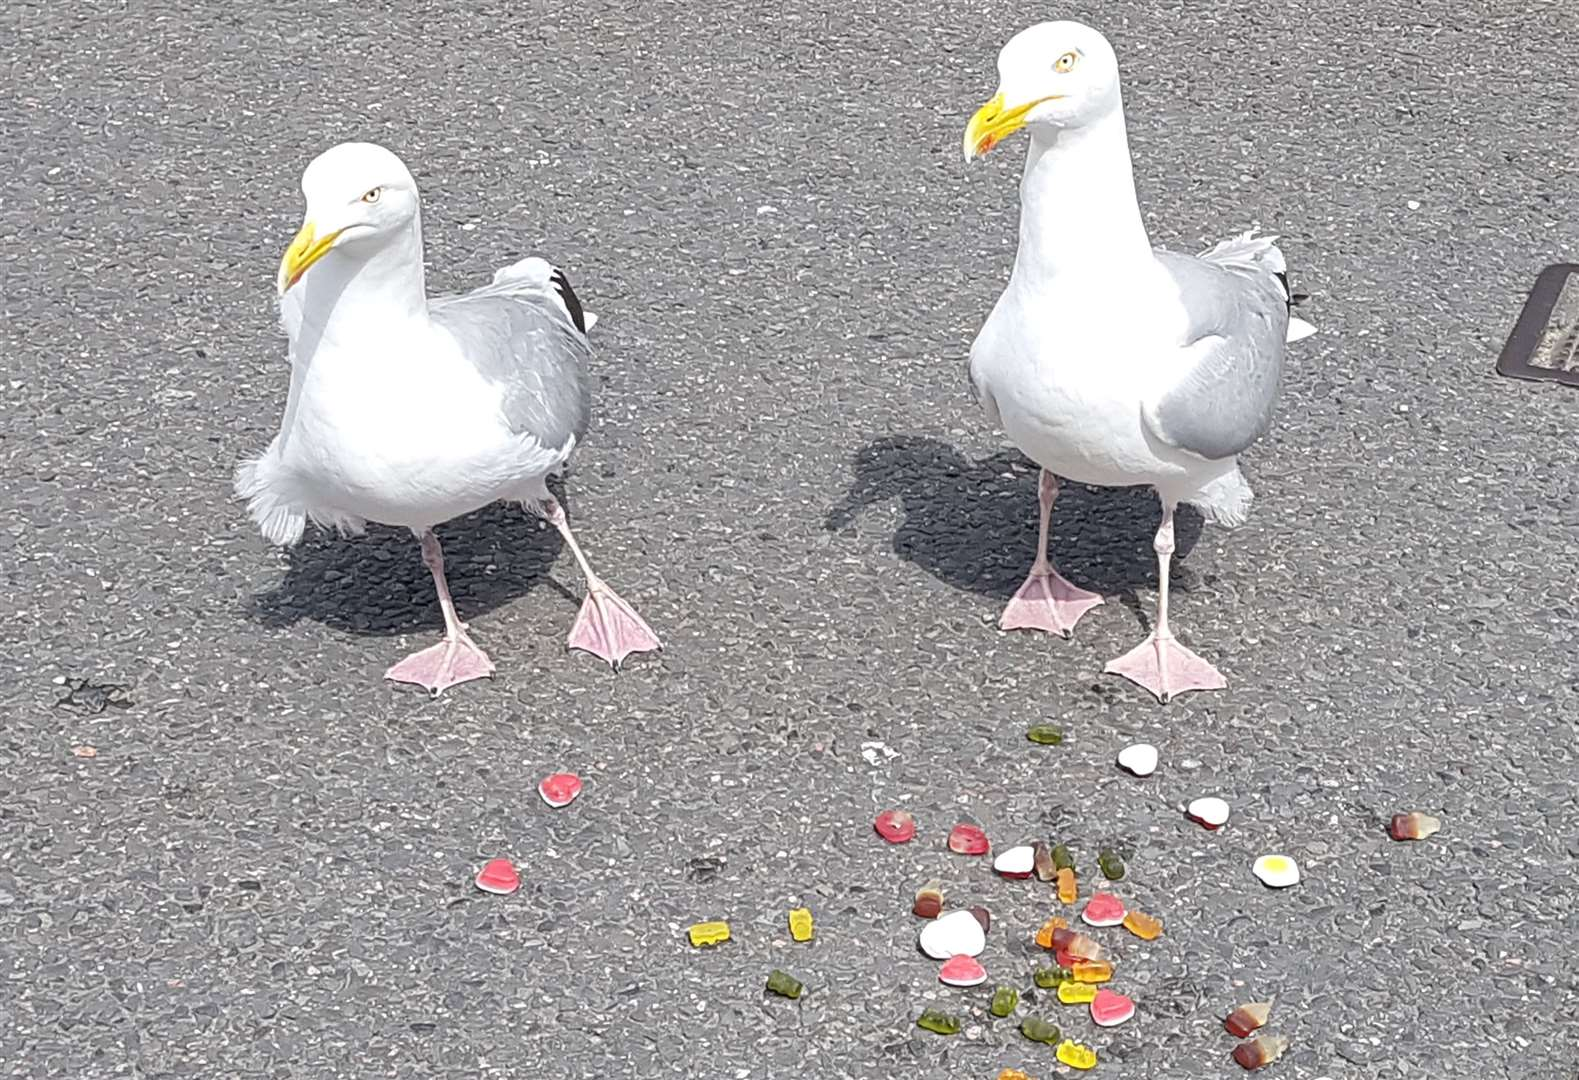 New research says staring at seagulls will make them less likely to steal your food. Picture: Kathryn Hewitt